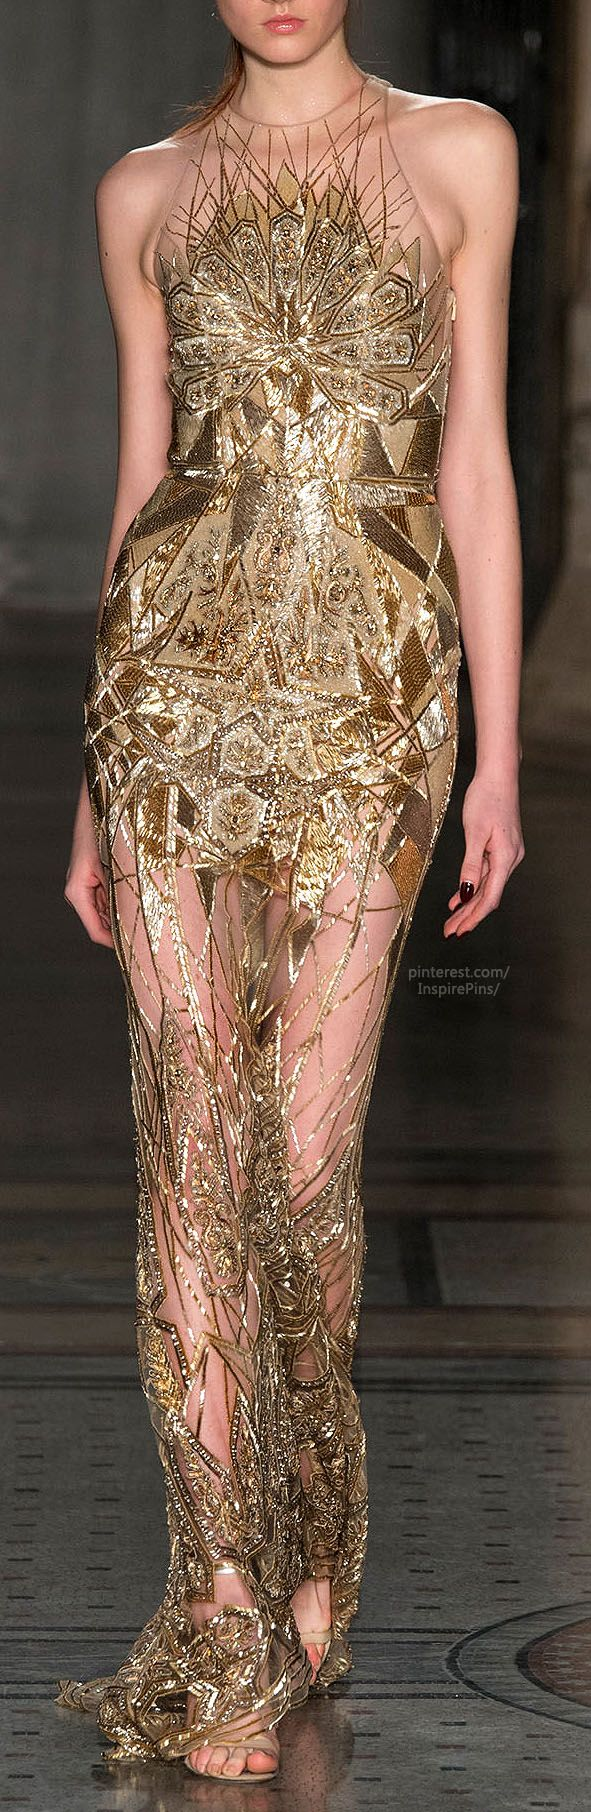 Amazing craftmanship: not my style but beautiful to look at, Fall 2014 Ready-to-Wear Julien Macdonald